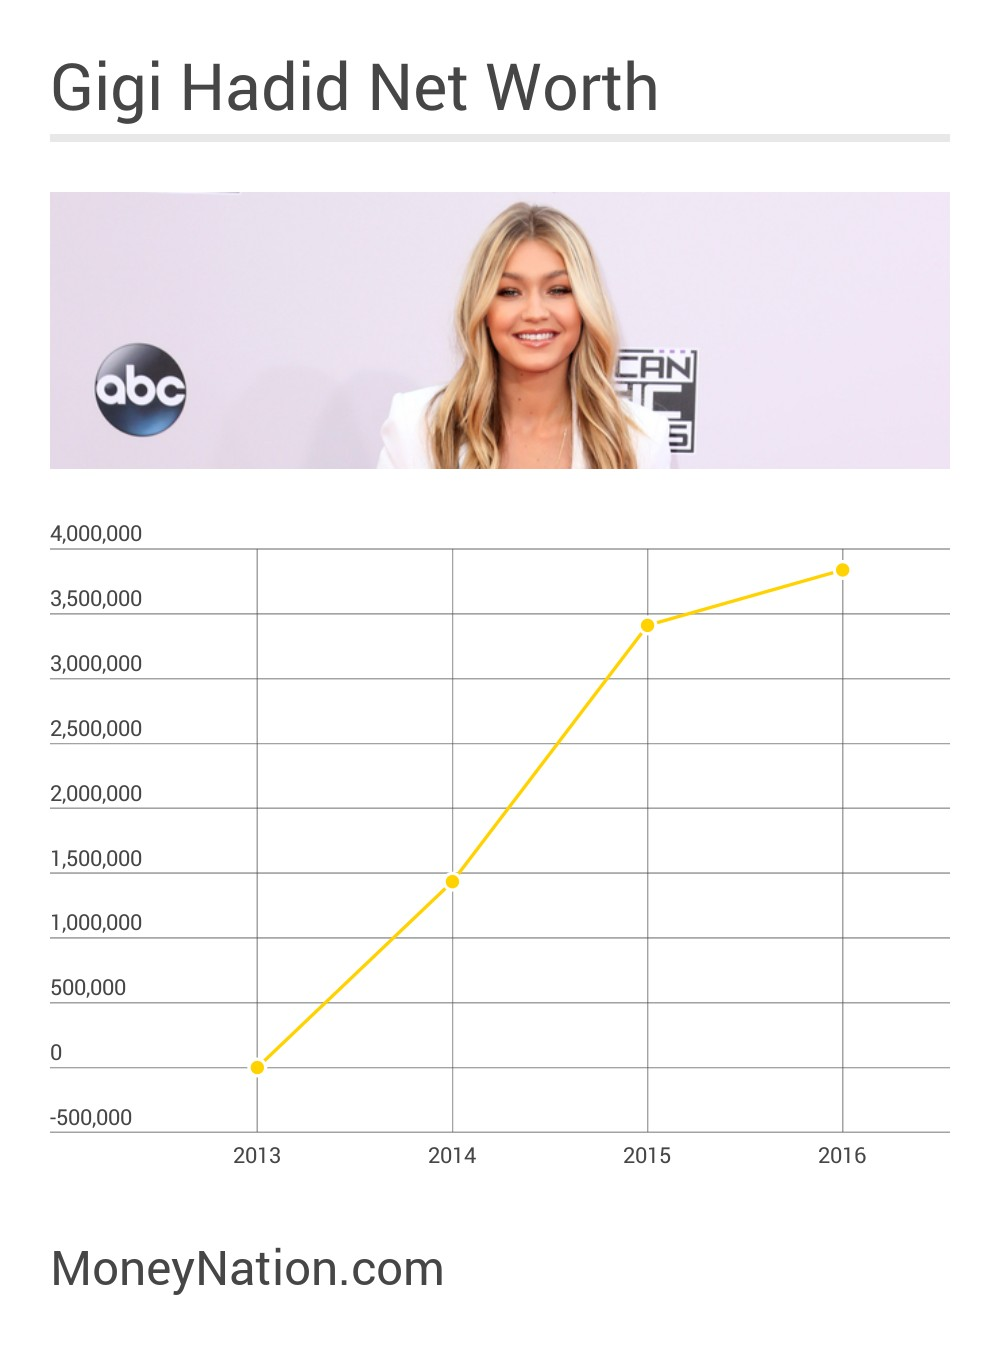 Gigi Hadid Net Worth Timeline